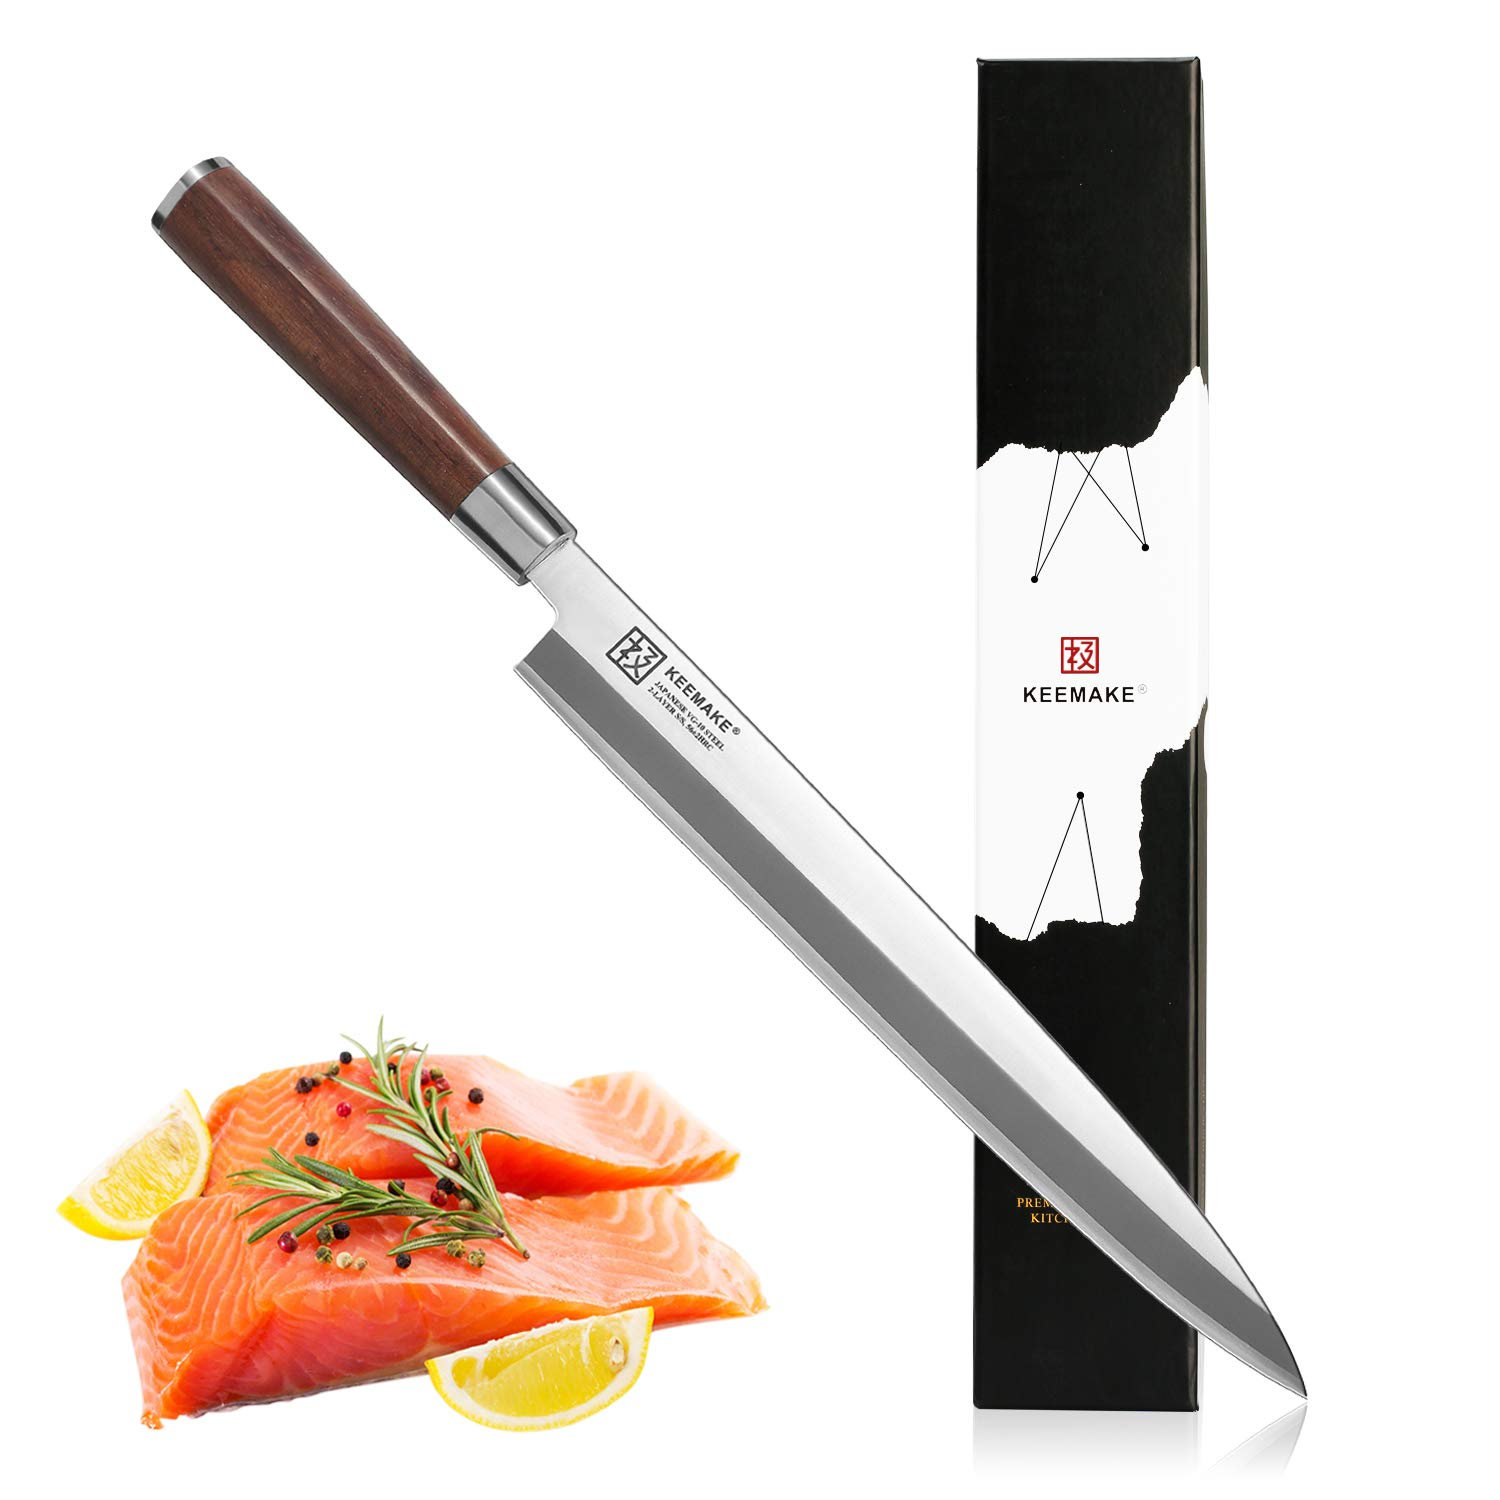 Sushi Knife, KEEMAKE Sashimi Yanagiba Knife Japanese - VG10 2-Layer Ply Steel Blade with Brazilian Pear Wood Handle by KEEMAKE